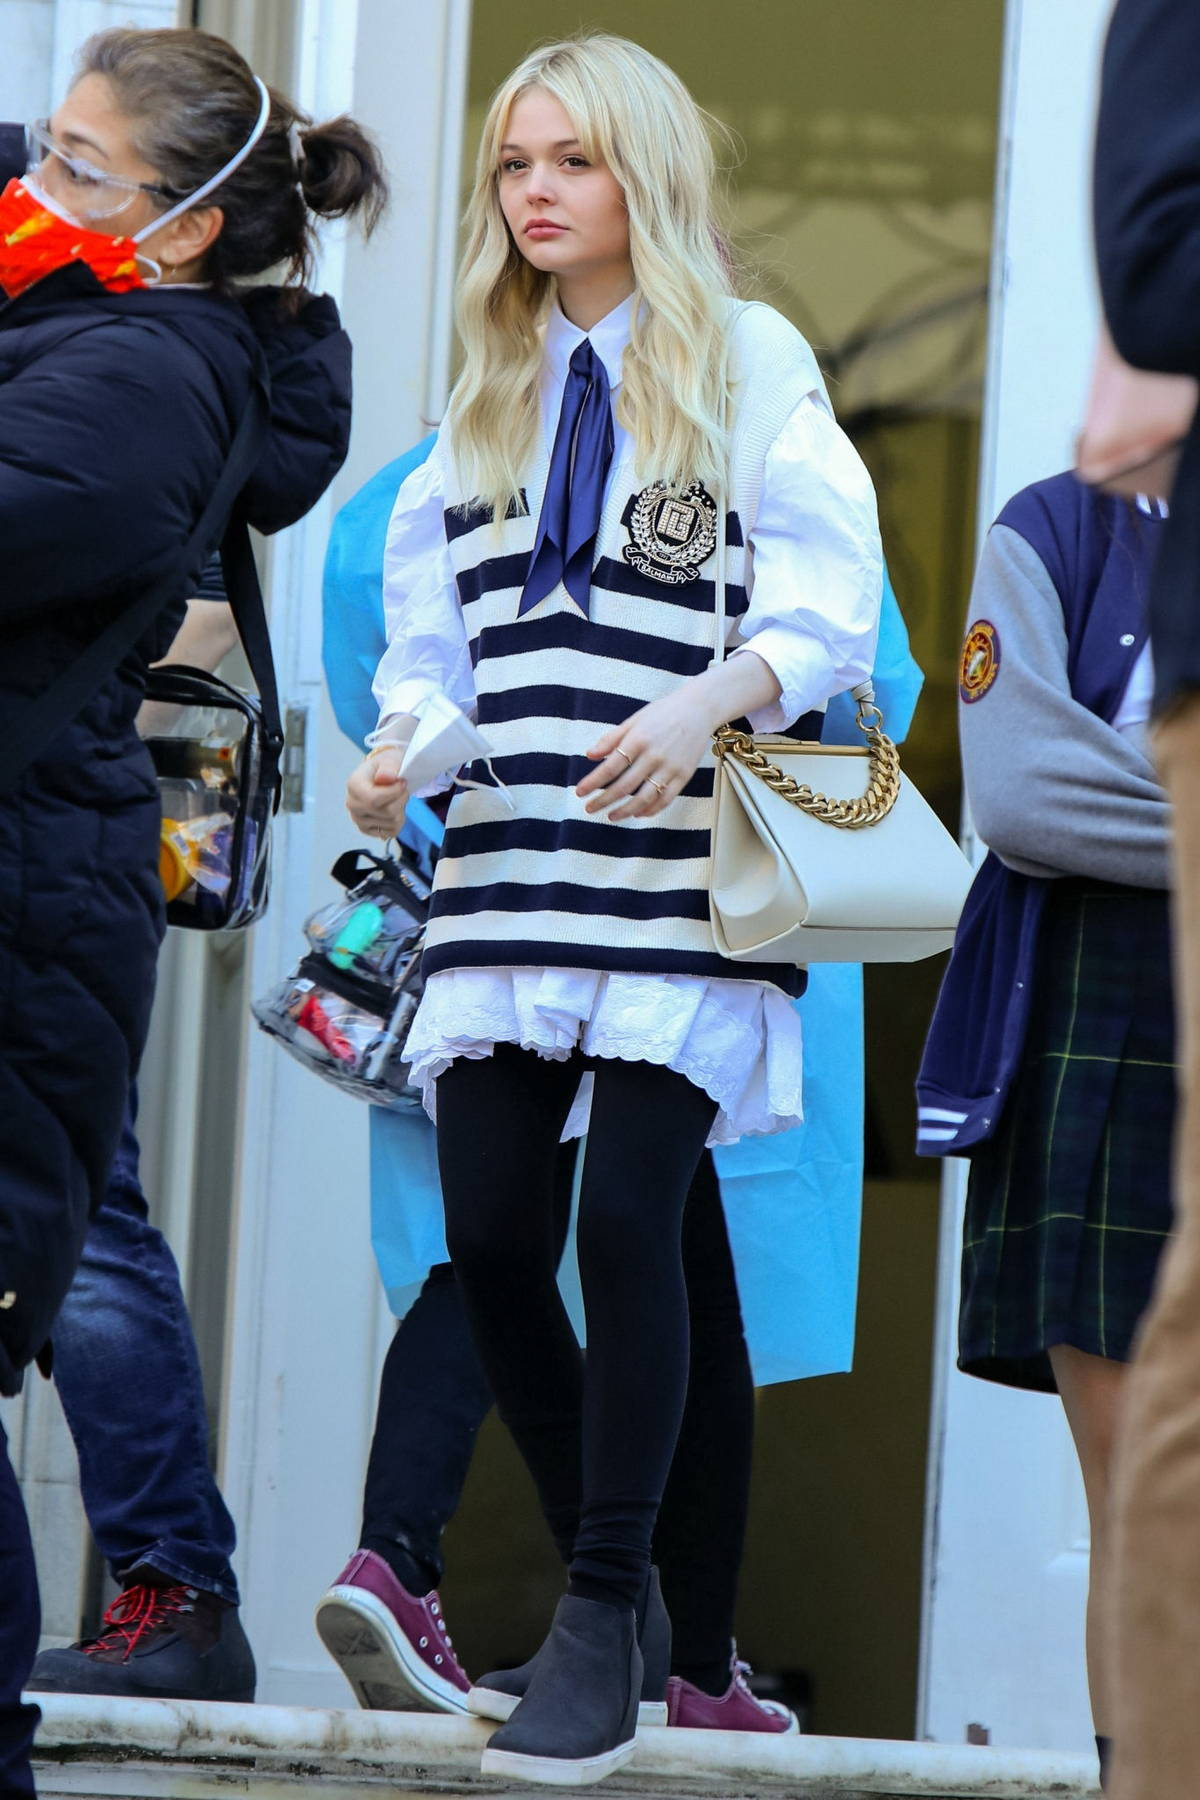 Emily Alyn Lind spotted at the film set of the 'Gossip Girl' TV series in New York City